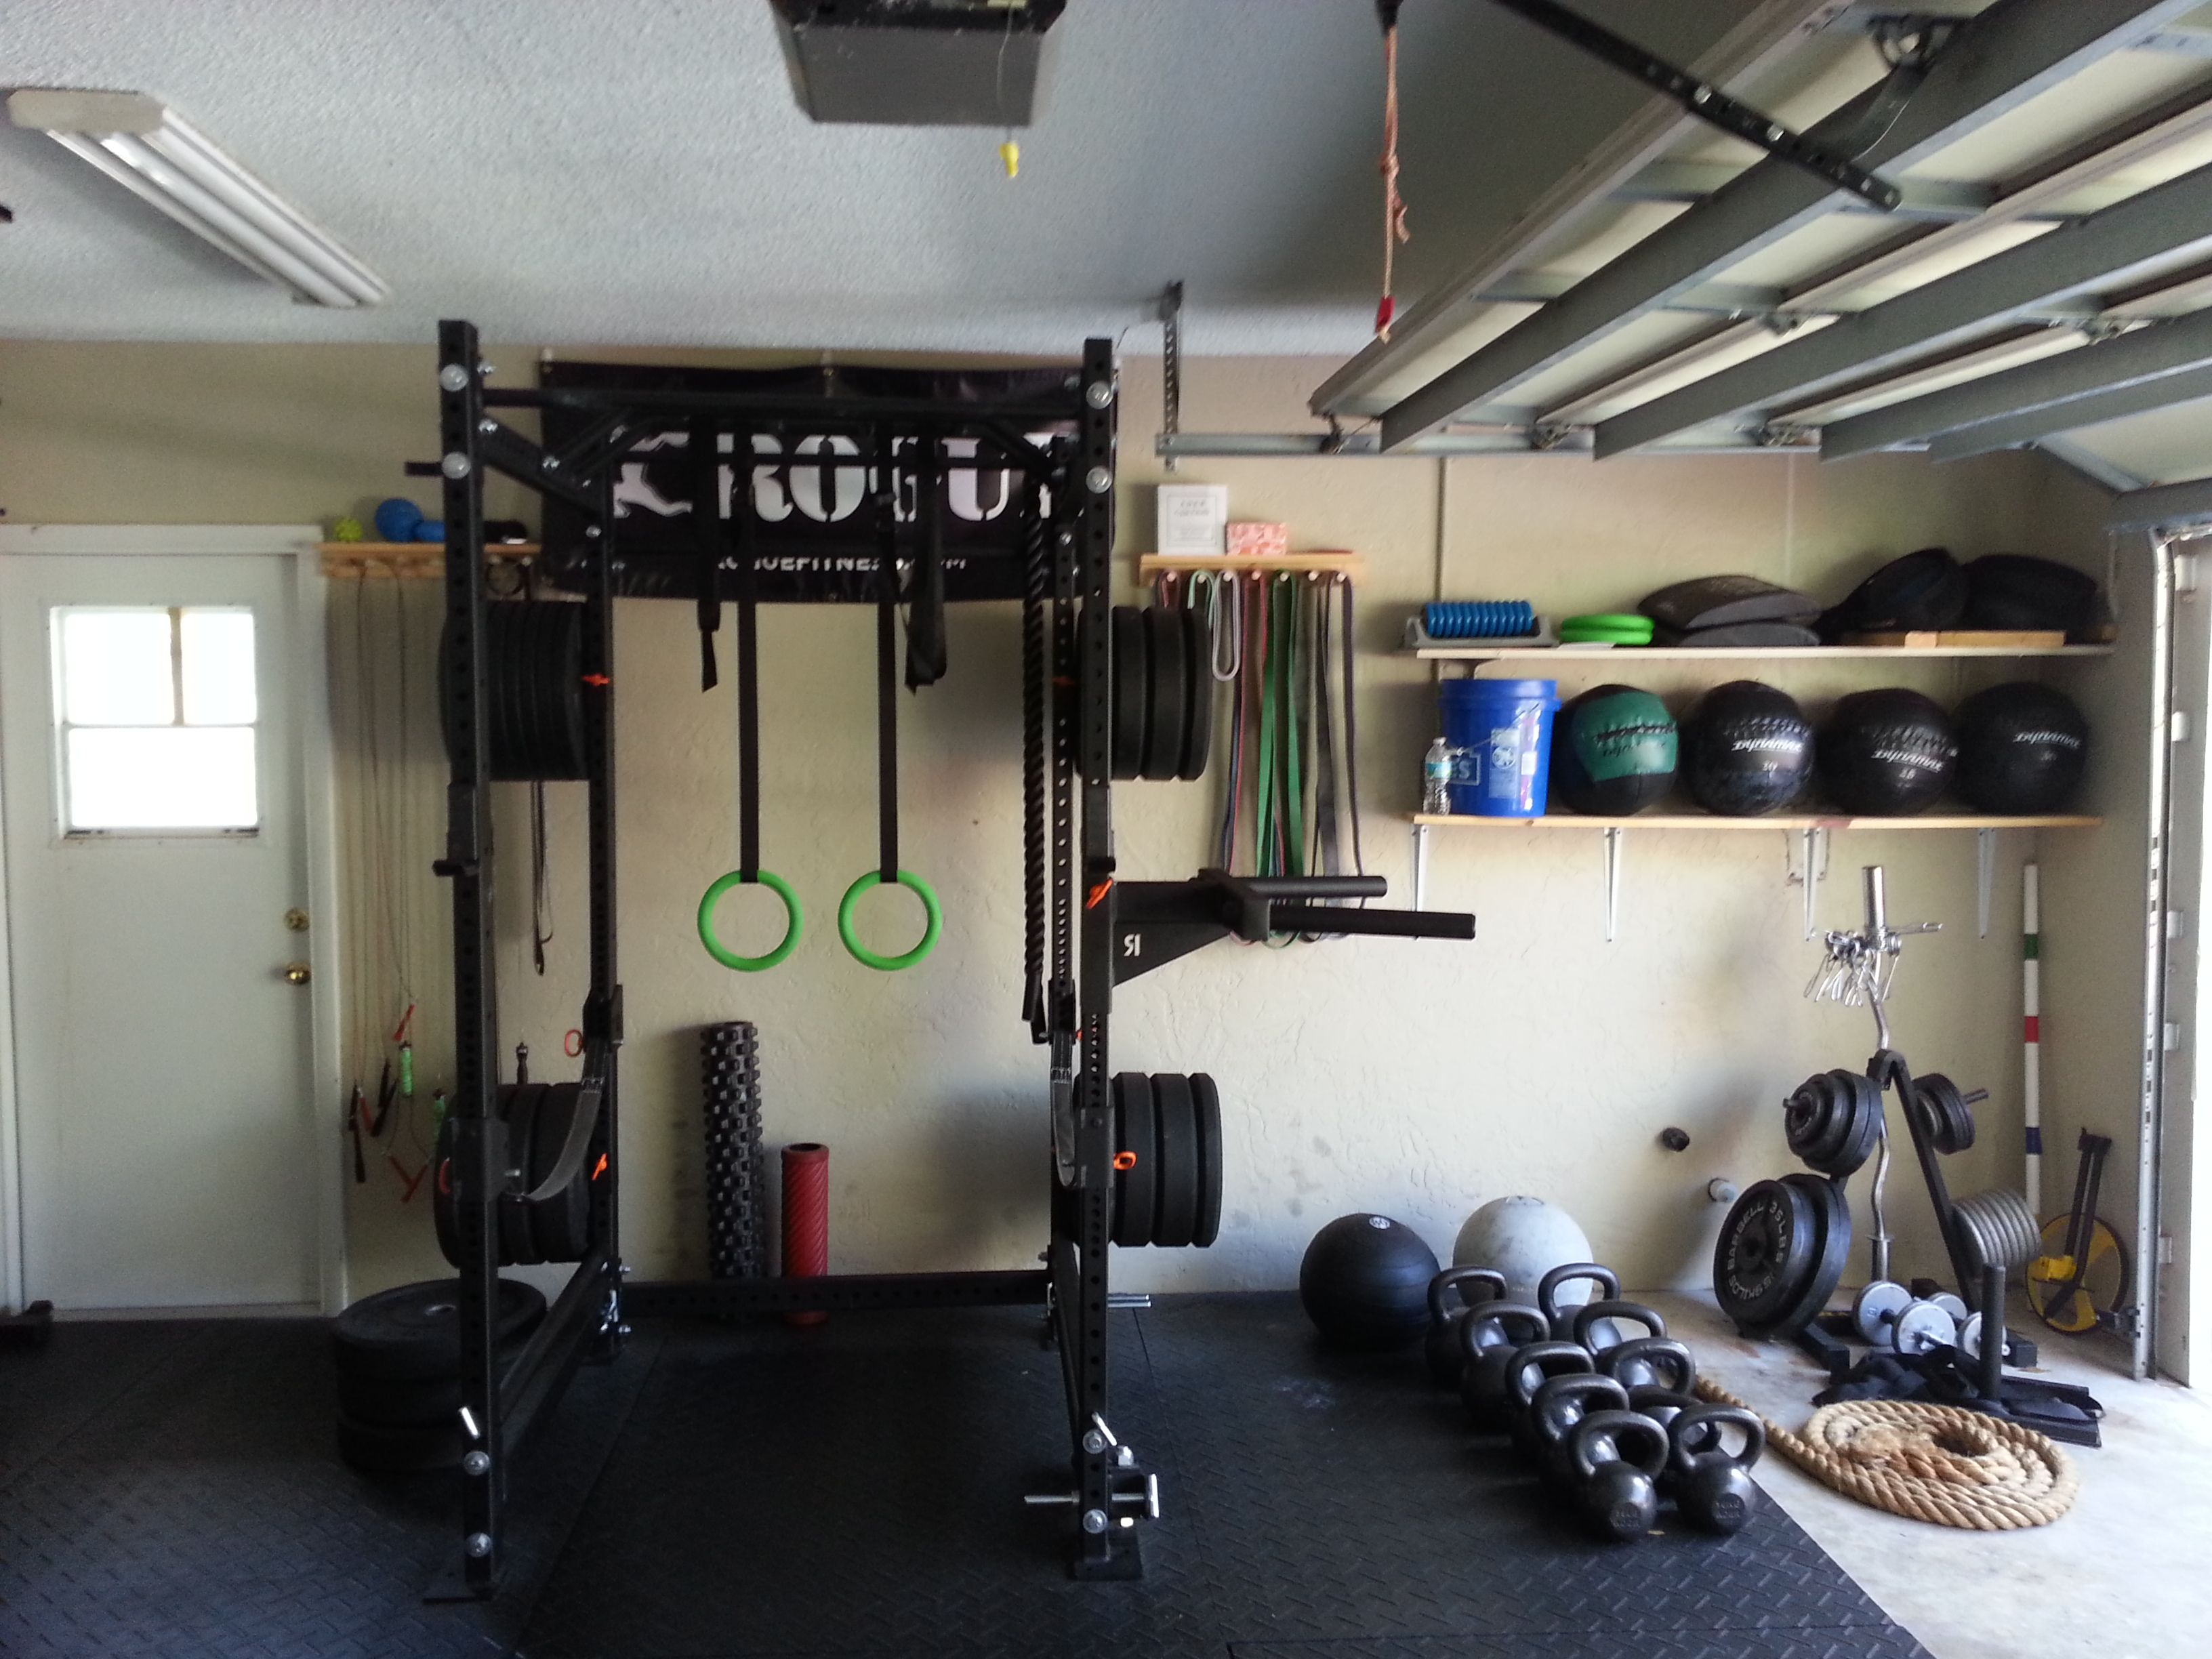 Great utilization of space in this homemade garage gym complete with